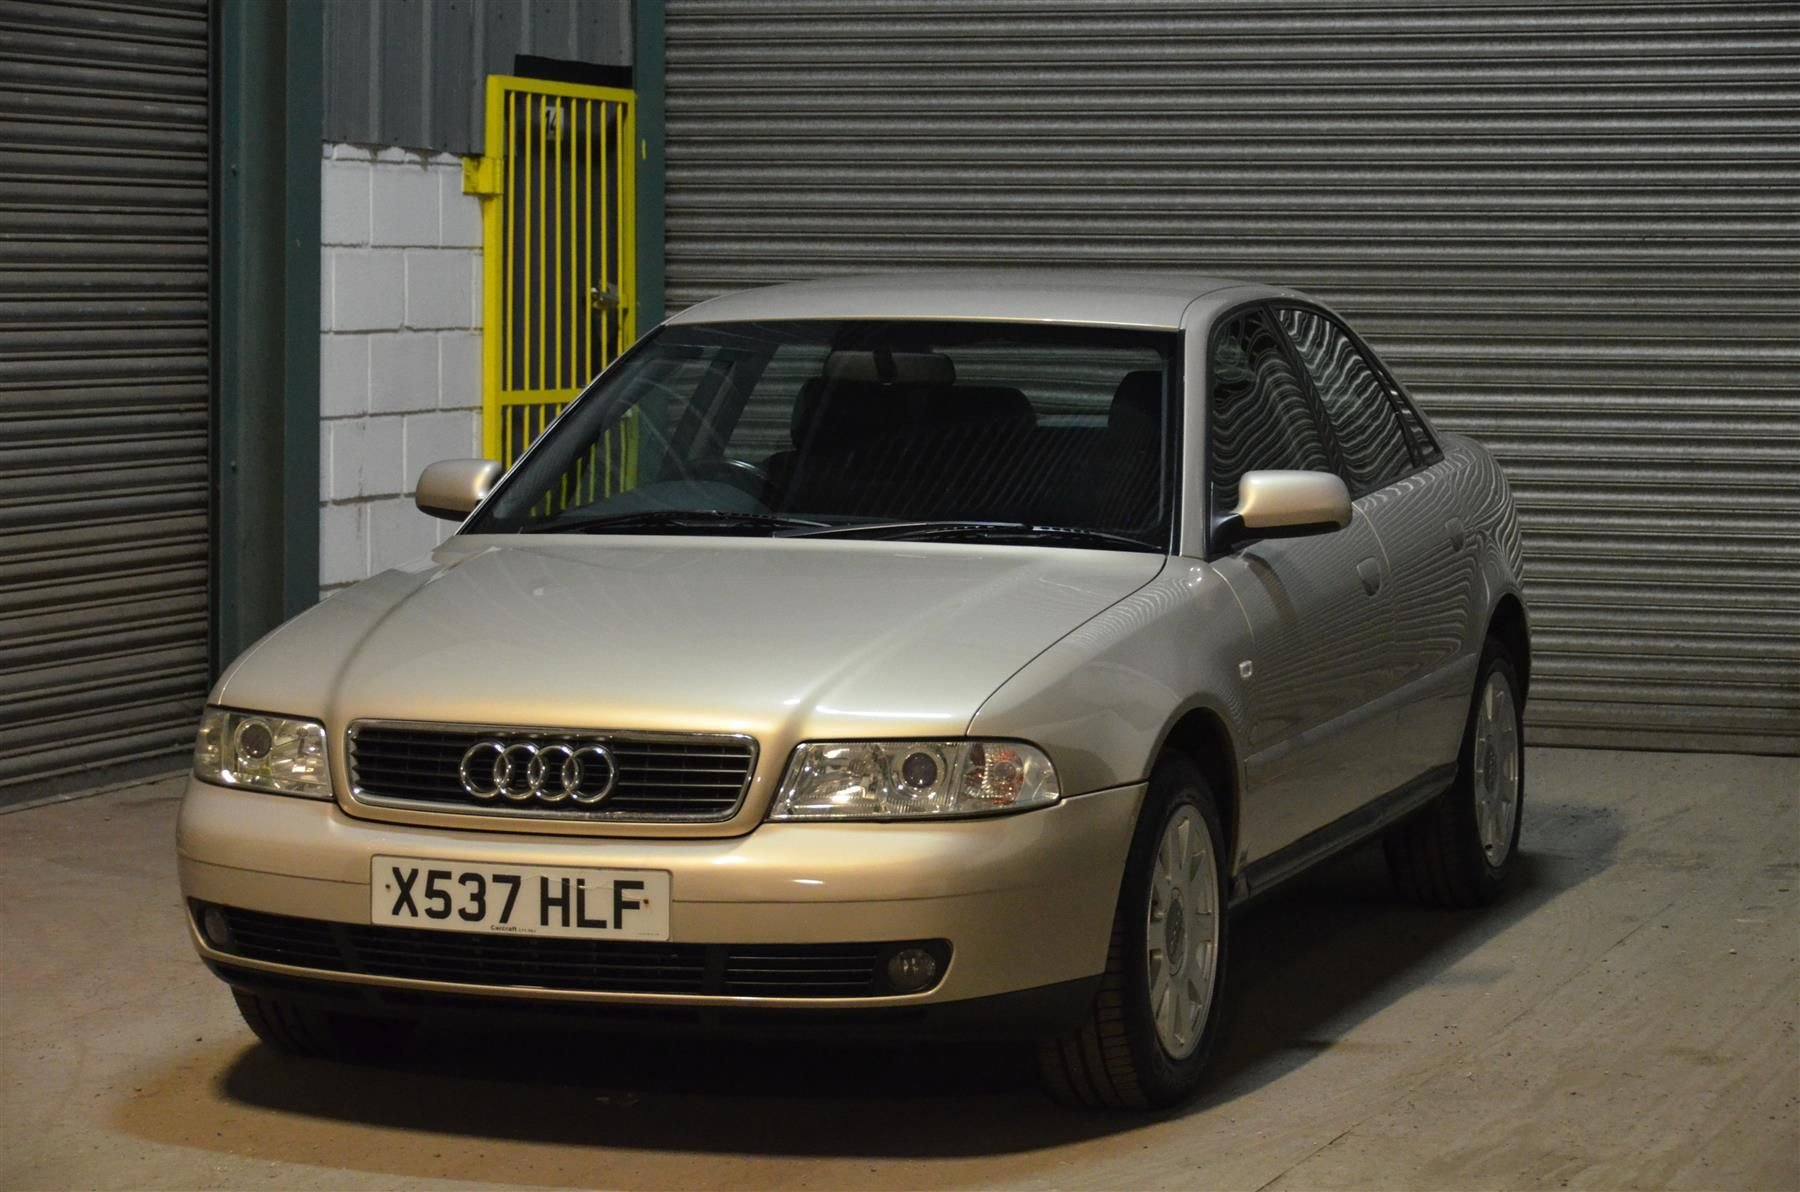 2000 Audi A4 1.8 SE SOLD (picture 1 of 6)